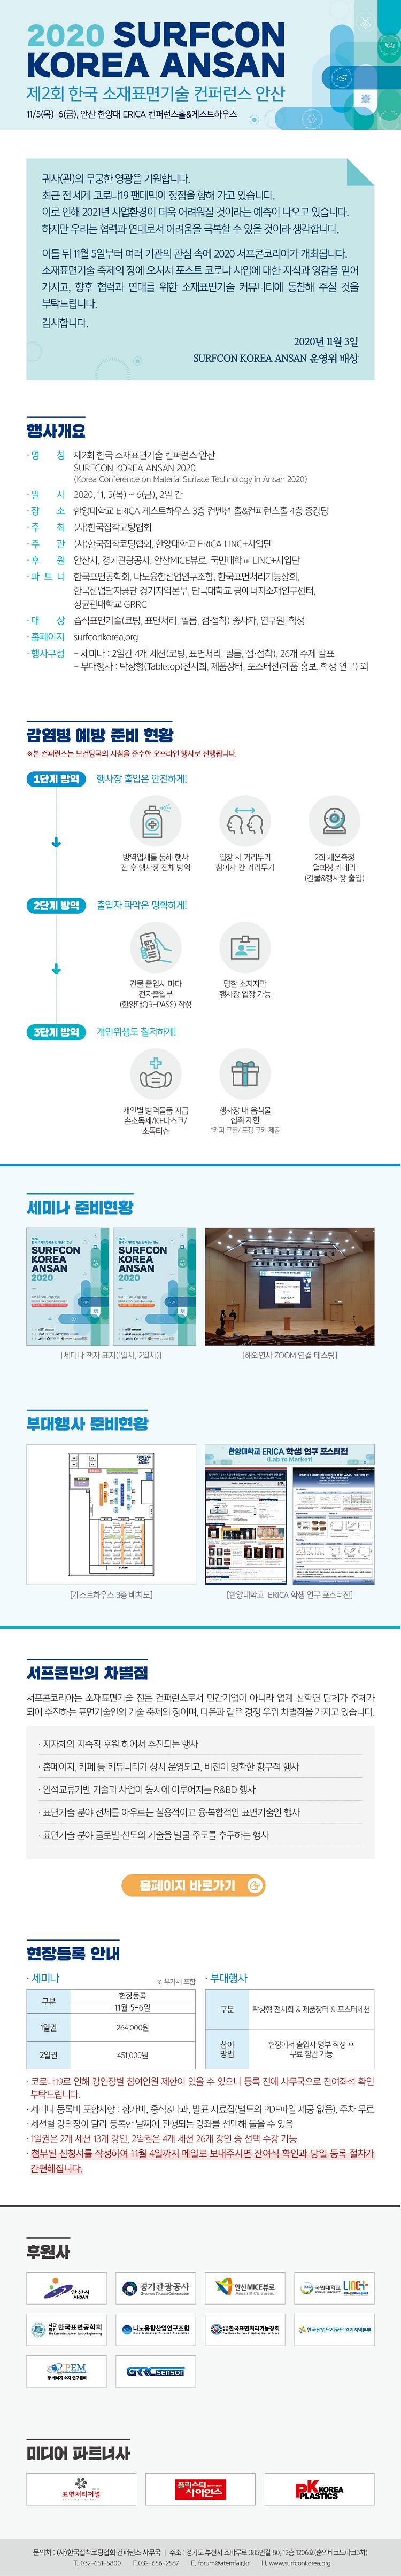 SURFCON KOREA ANSAN 2020(750).jpg